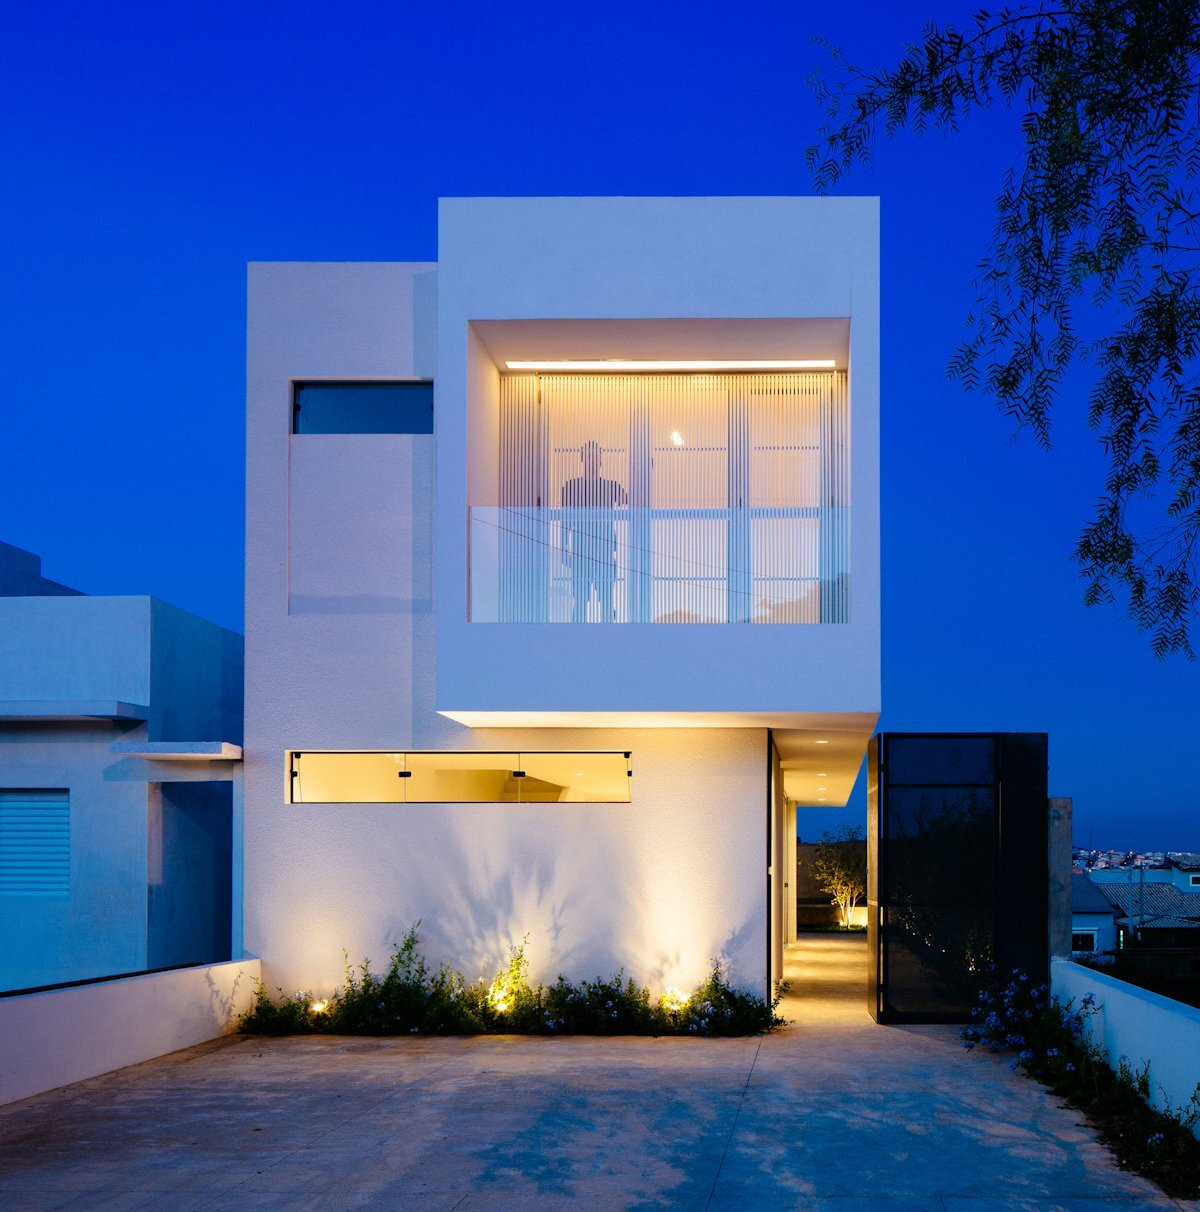 Excellent Sorocaba House From Sao Paulo By Estudio Bra Largest Home Design Picture Inspirations Pitcheantrous